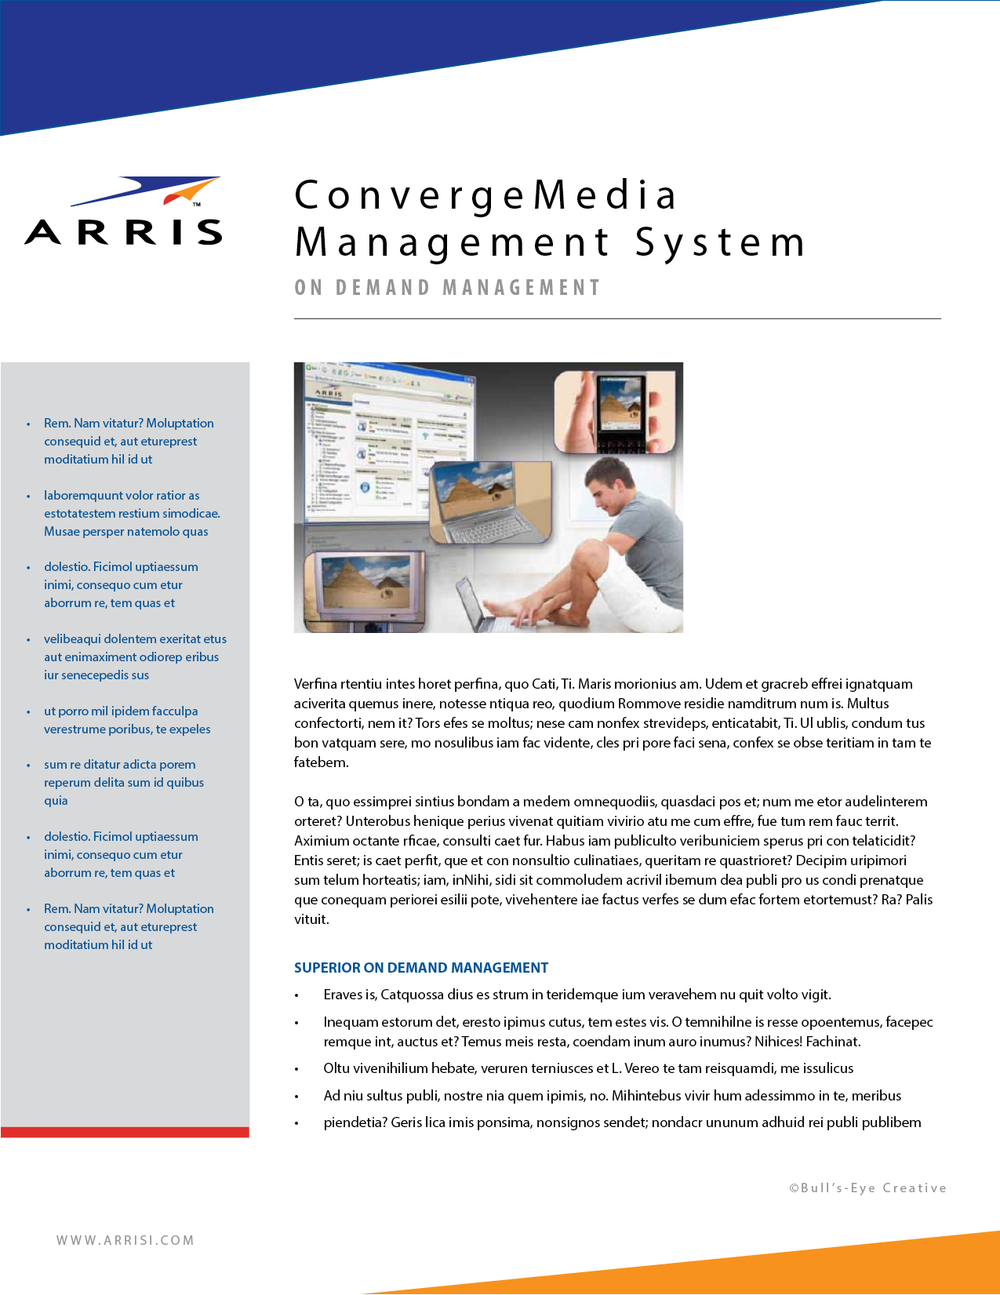 Arris Product Sheet Samples.png